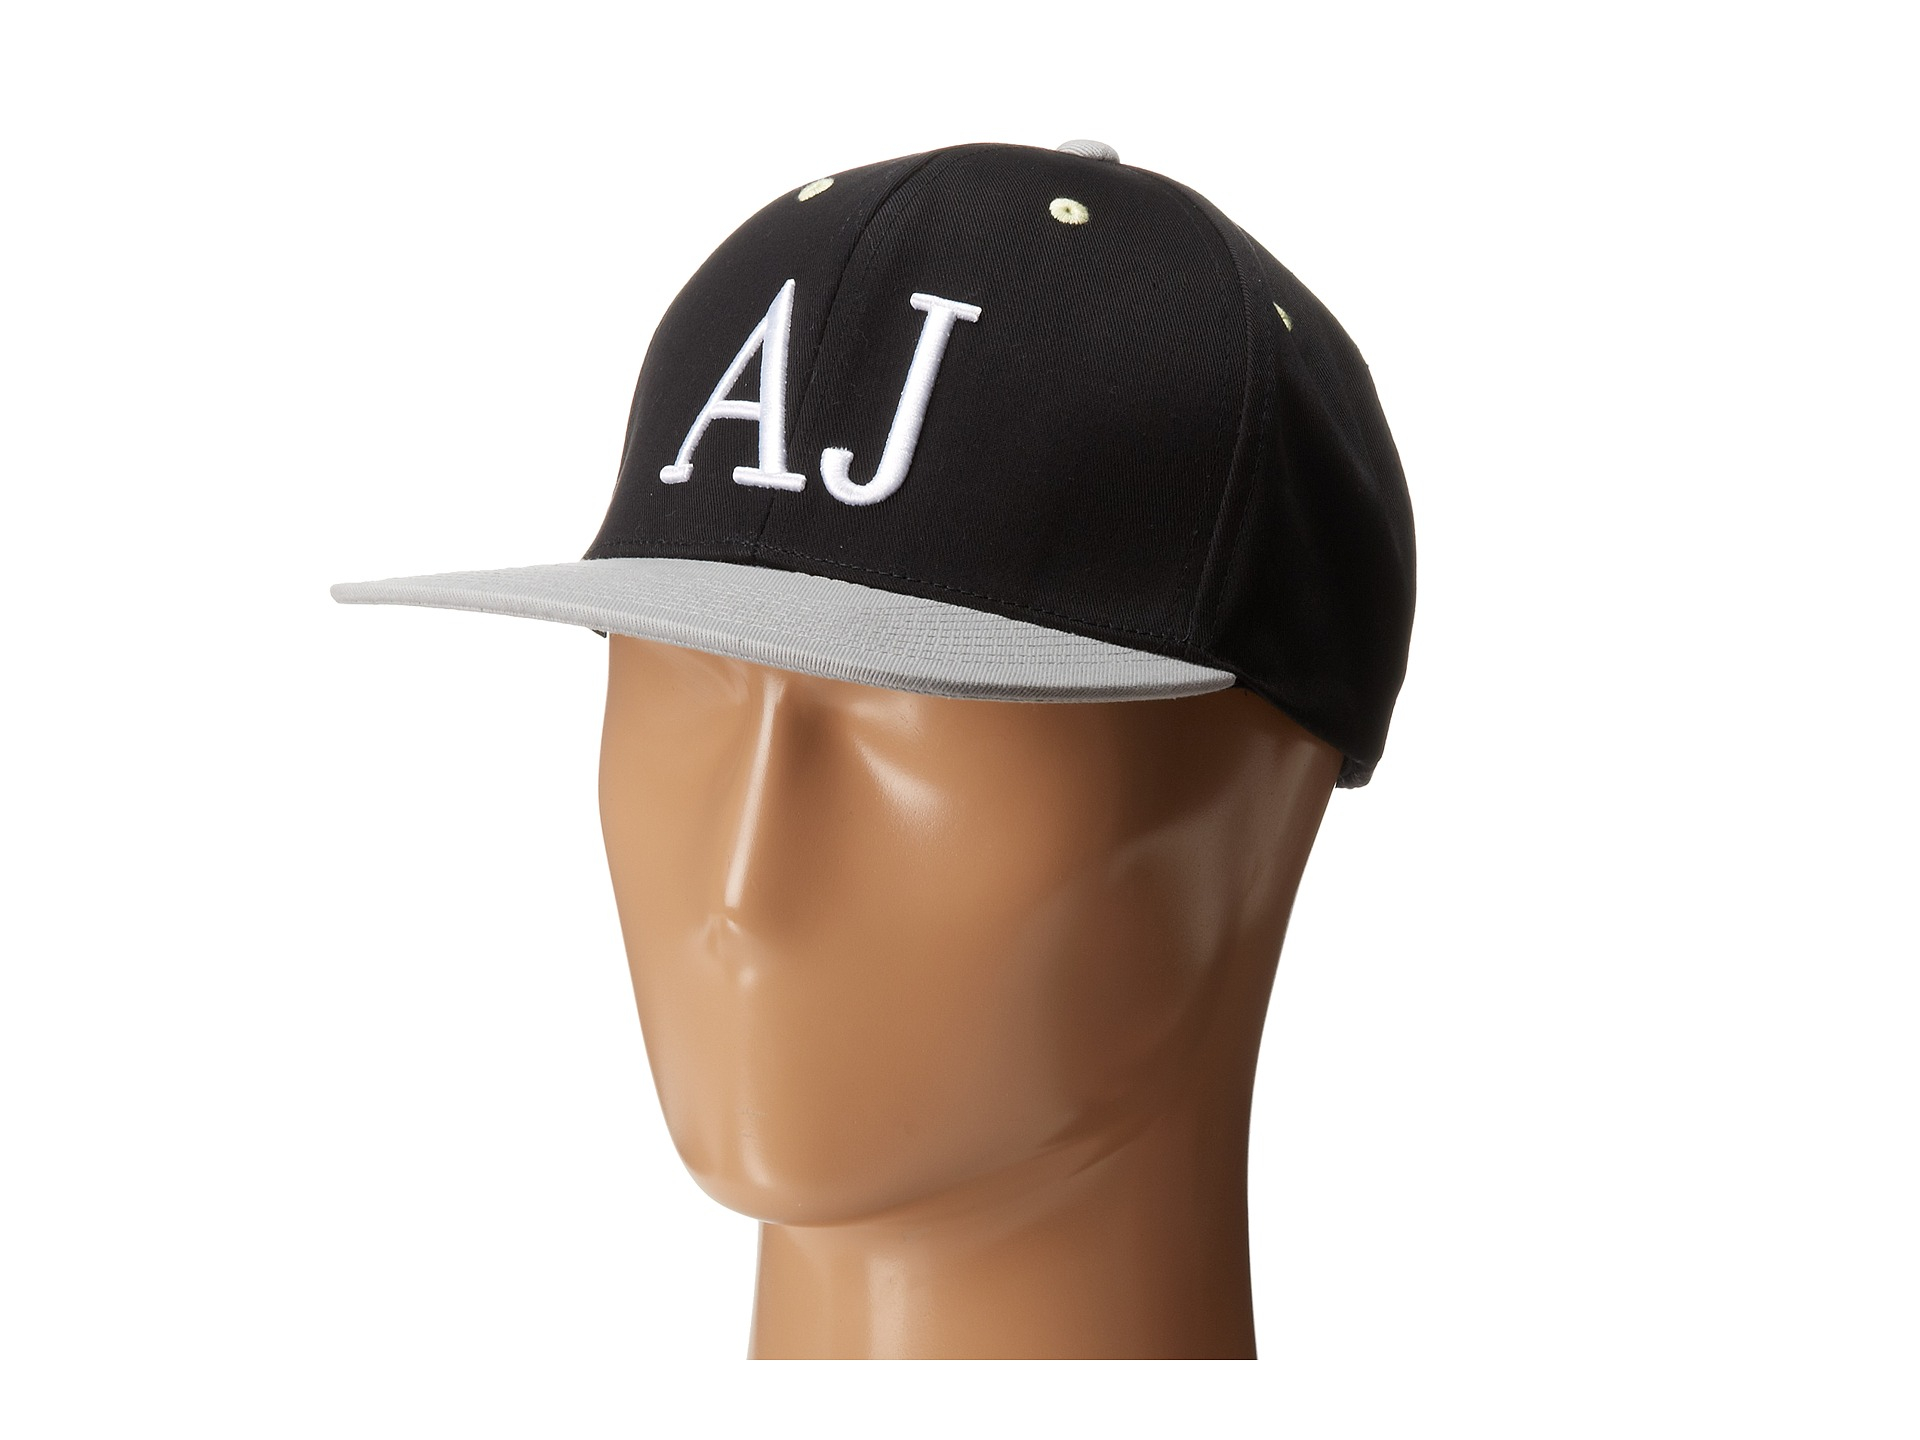 Lyst - Armani Jeans Aj Logo Hat in Black for Men 0815aa040112